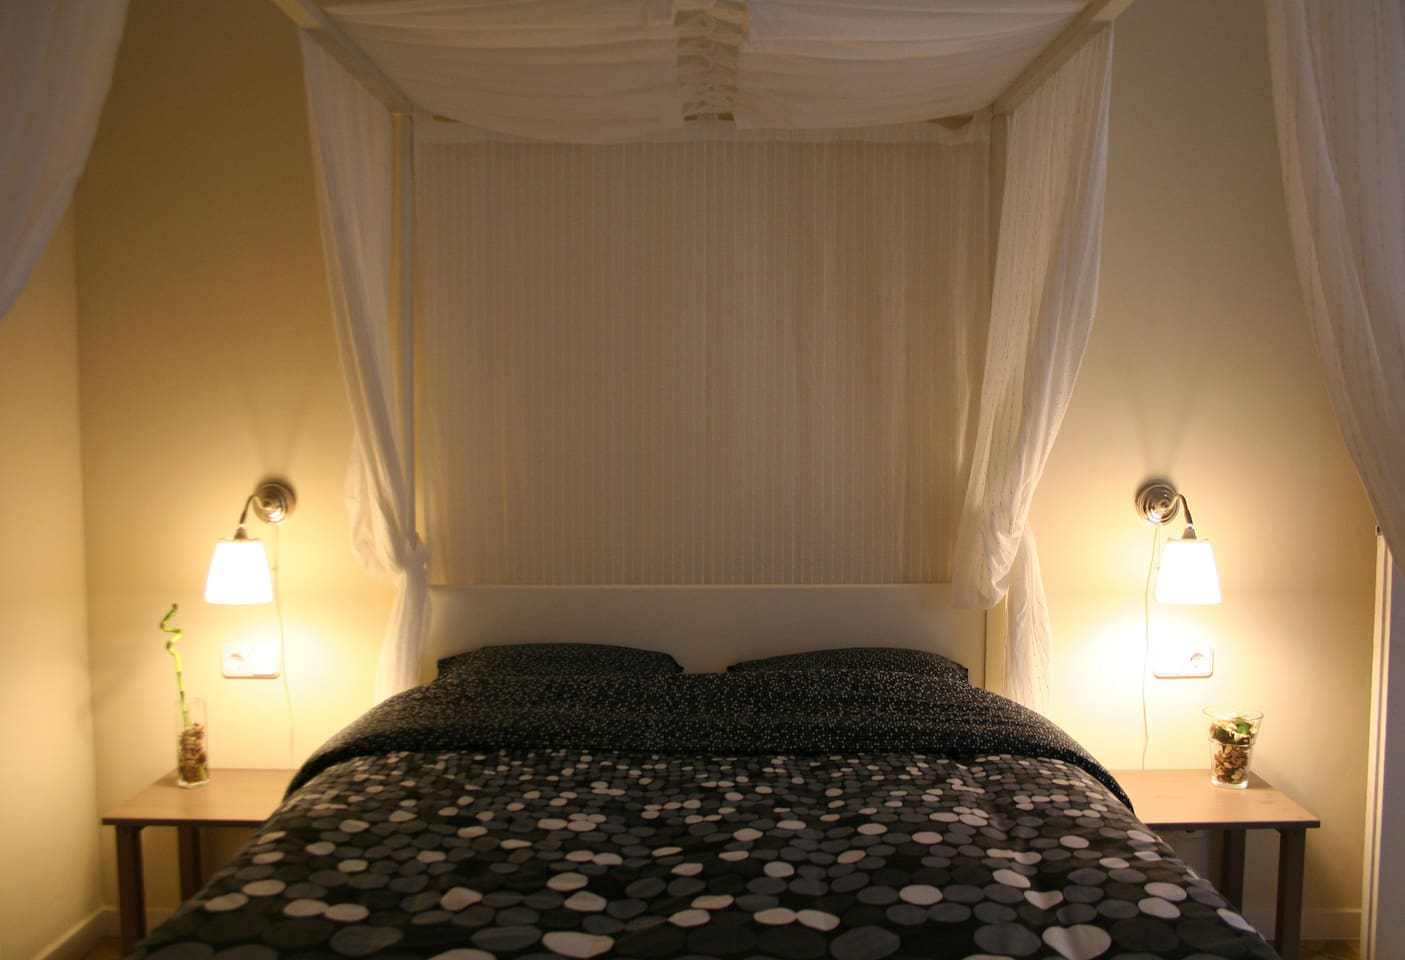 The four-poster matrimonial bed by night -a dream